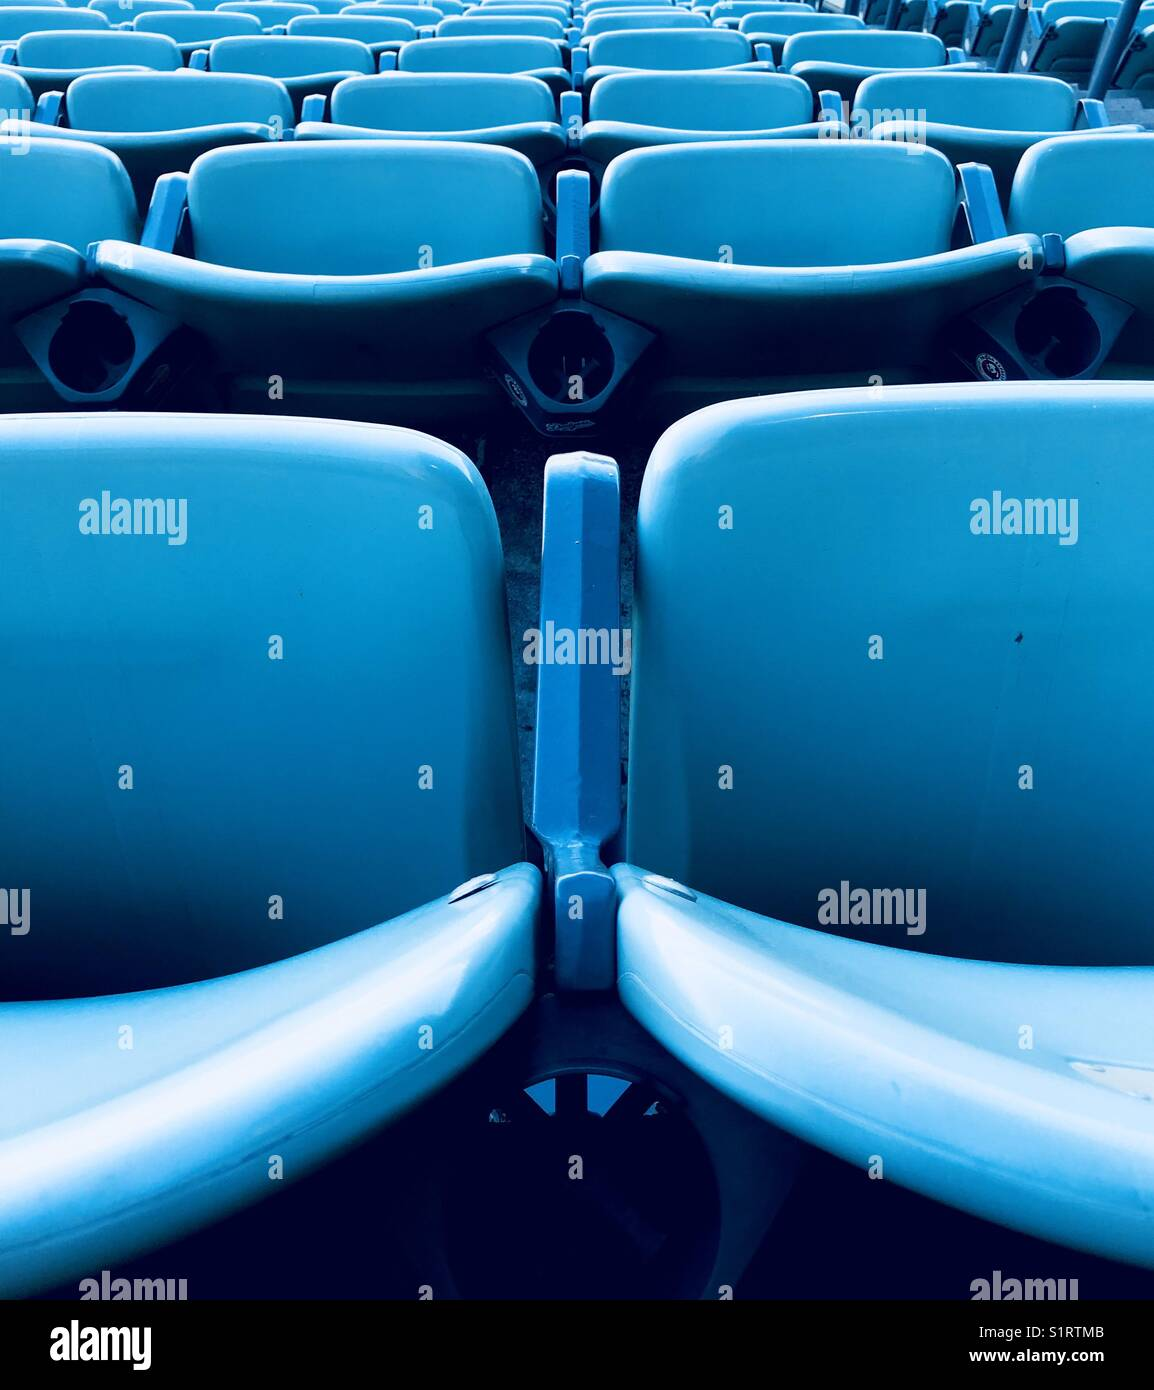 The rows of blue chairs in the reserve level at dodger stadium. Los Angeles, California USA. - Stock Image